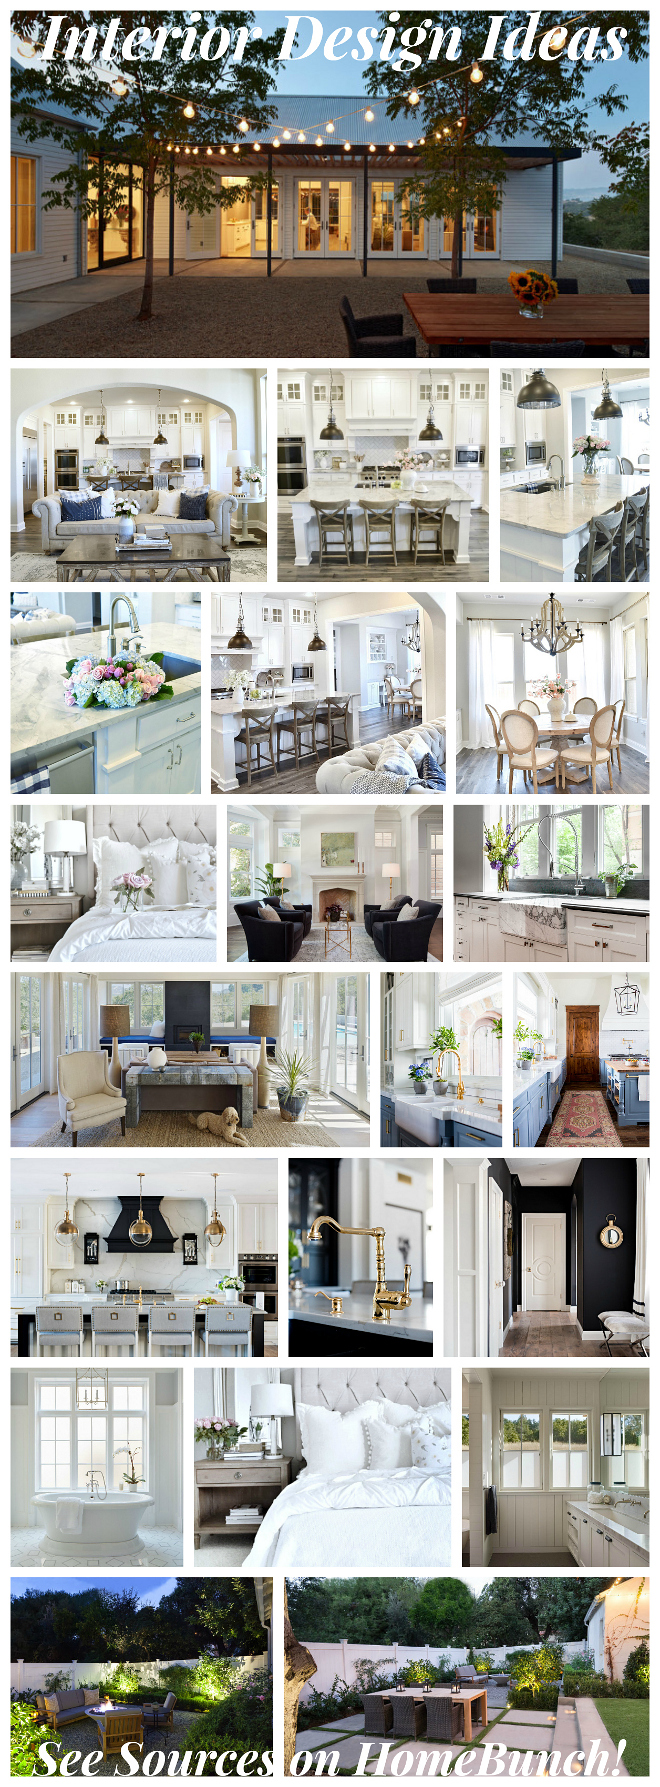 Interior Design Ideas is a weekly series on Home Bunch featuring the lastest interior design trends.